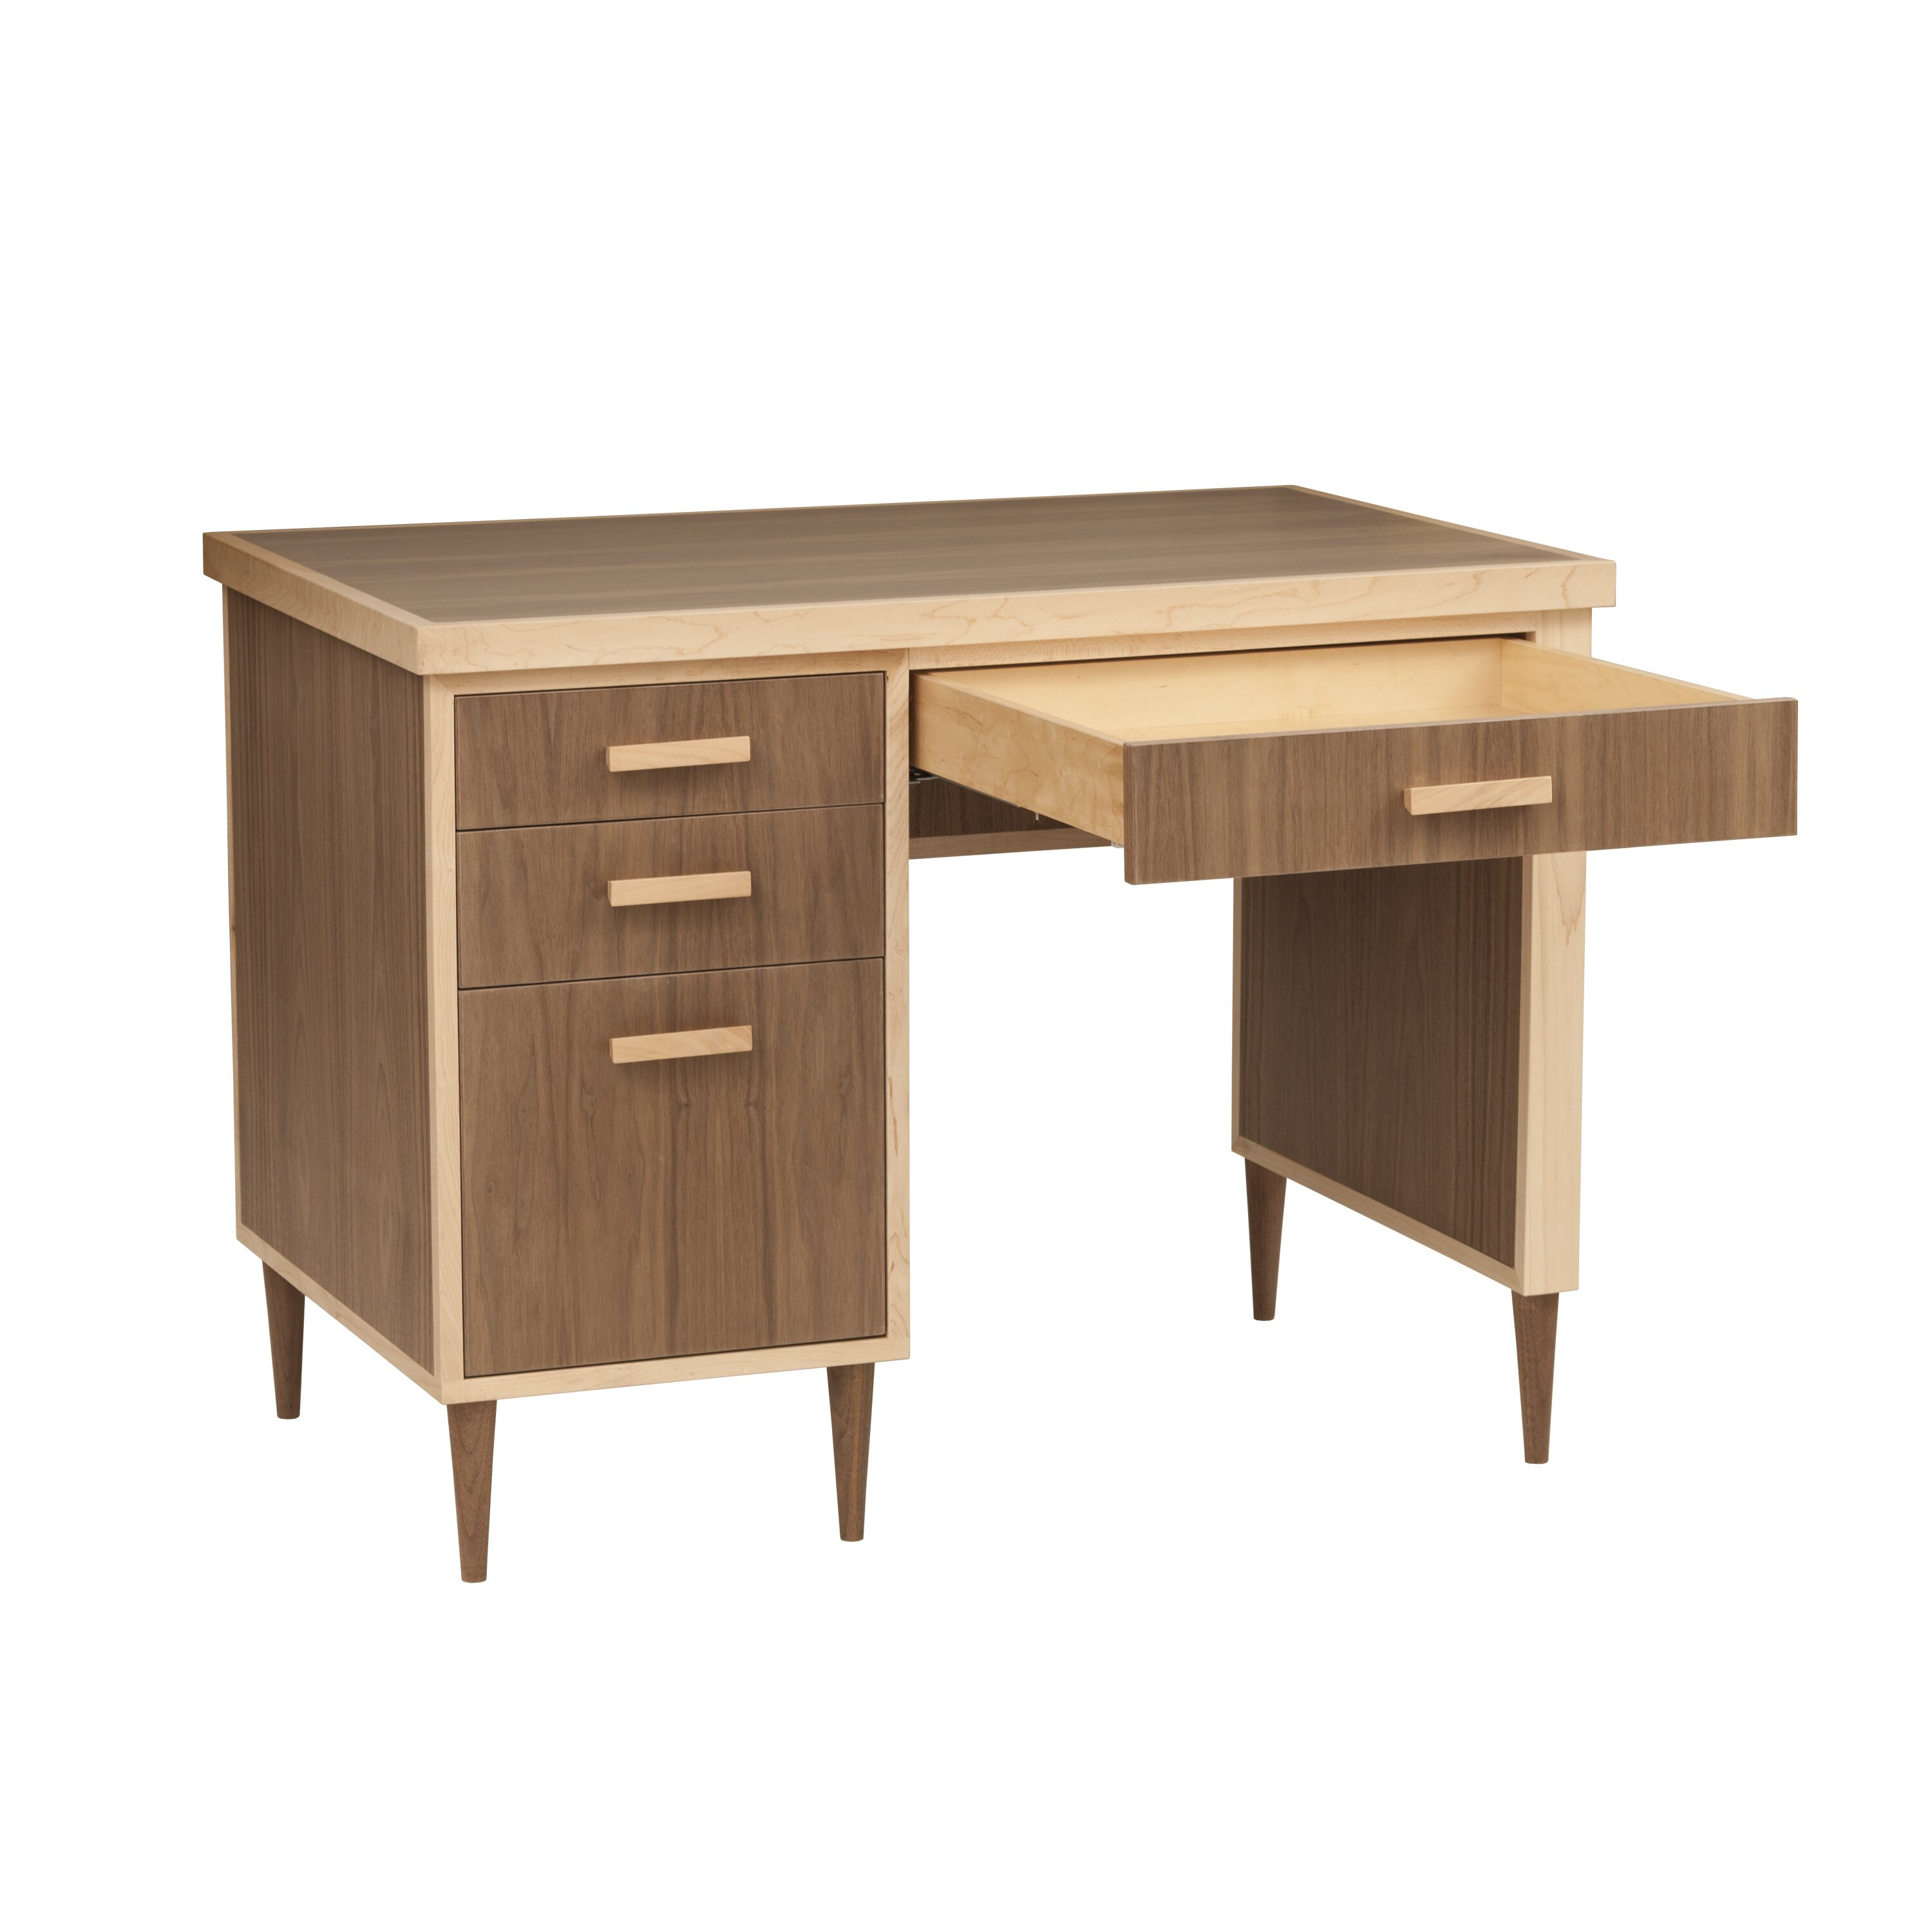 Urbangreen Midcentury Modern Computer Desk | Wayfair